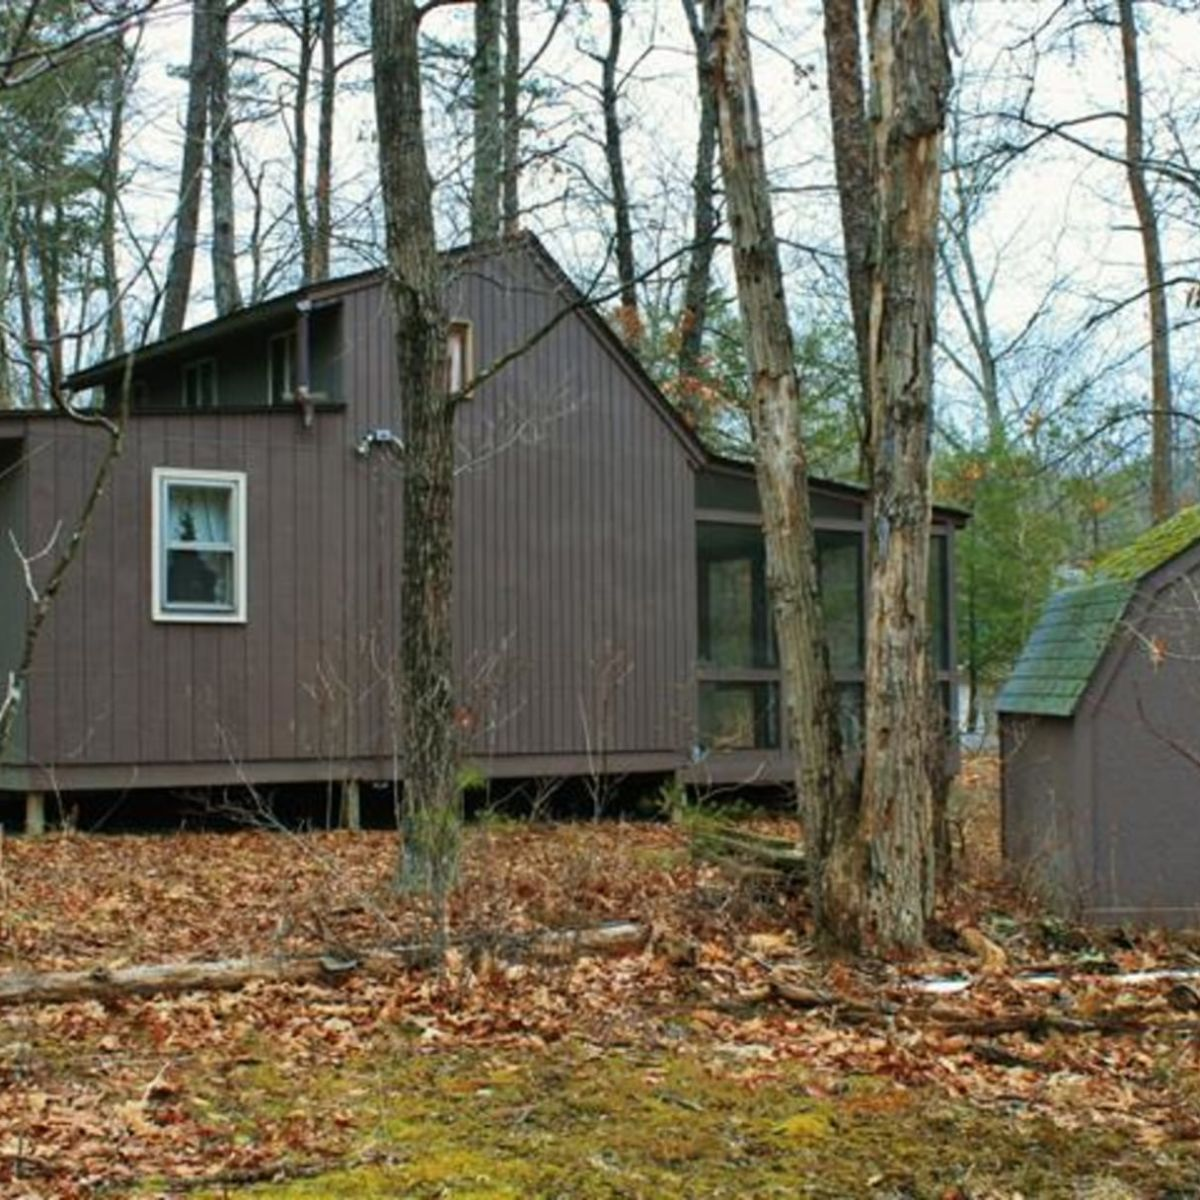 Tiny Little West Virginia Cabin On 2.76 Wooded Acres